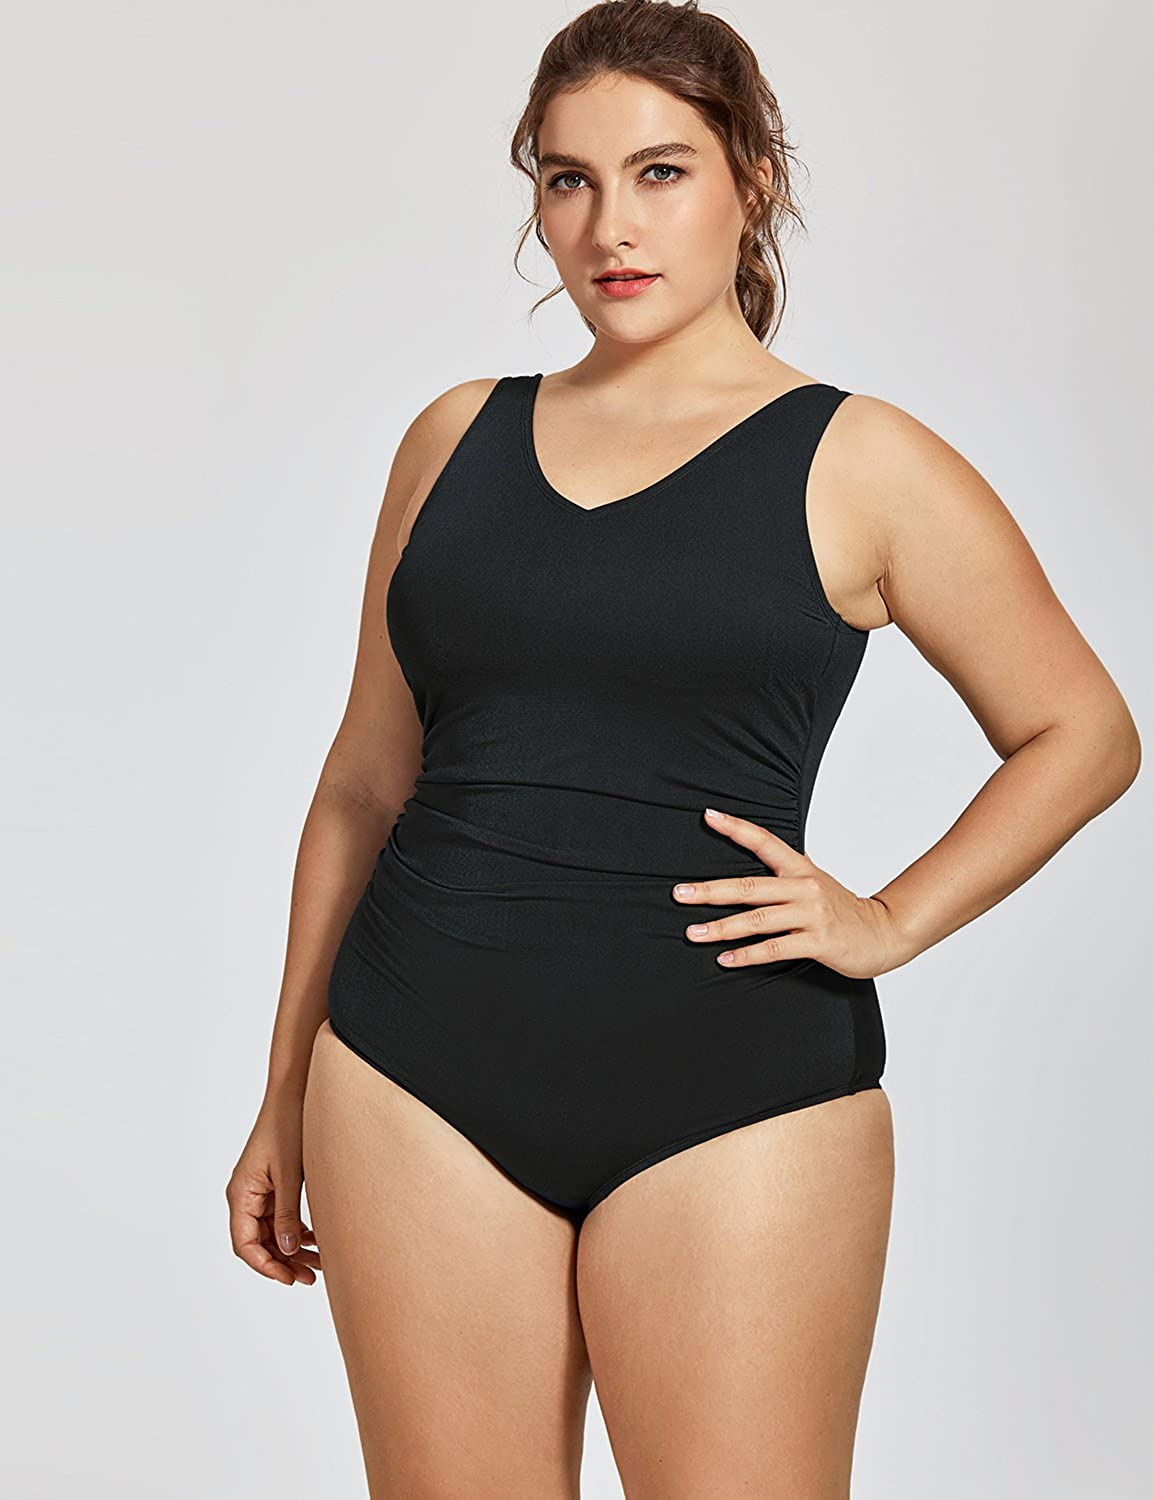 SYROKAN Womens Sport Side Shirred Plus Size Athletic One Piece Swimsuit